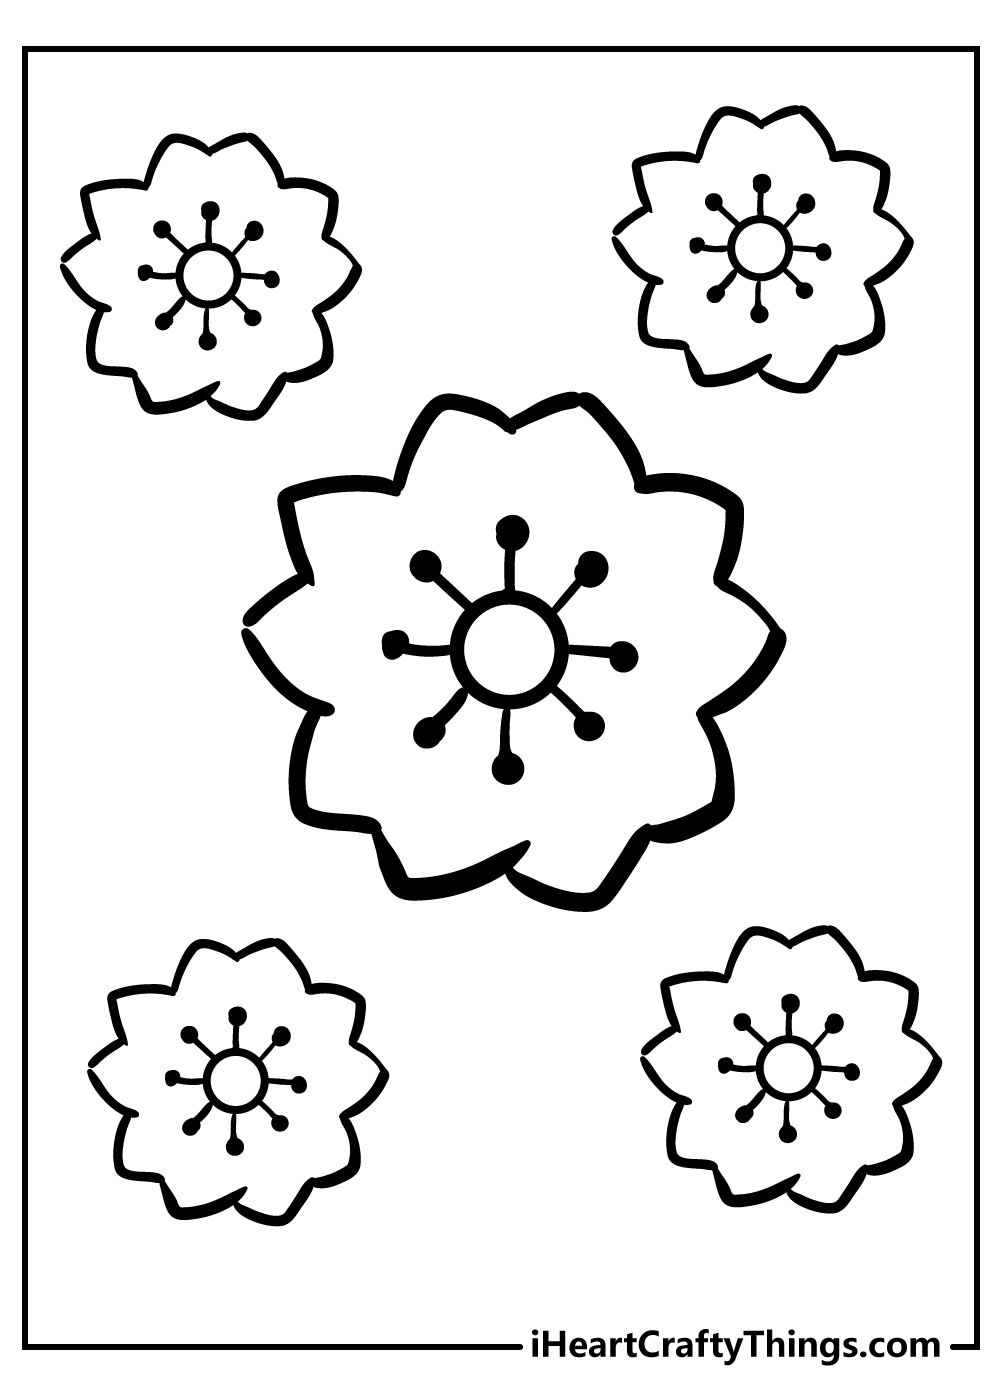 black and white simple flower coloring pages for kids